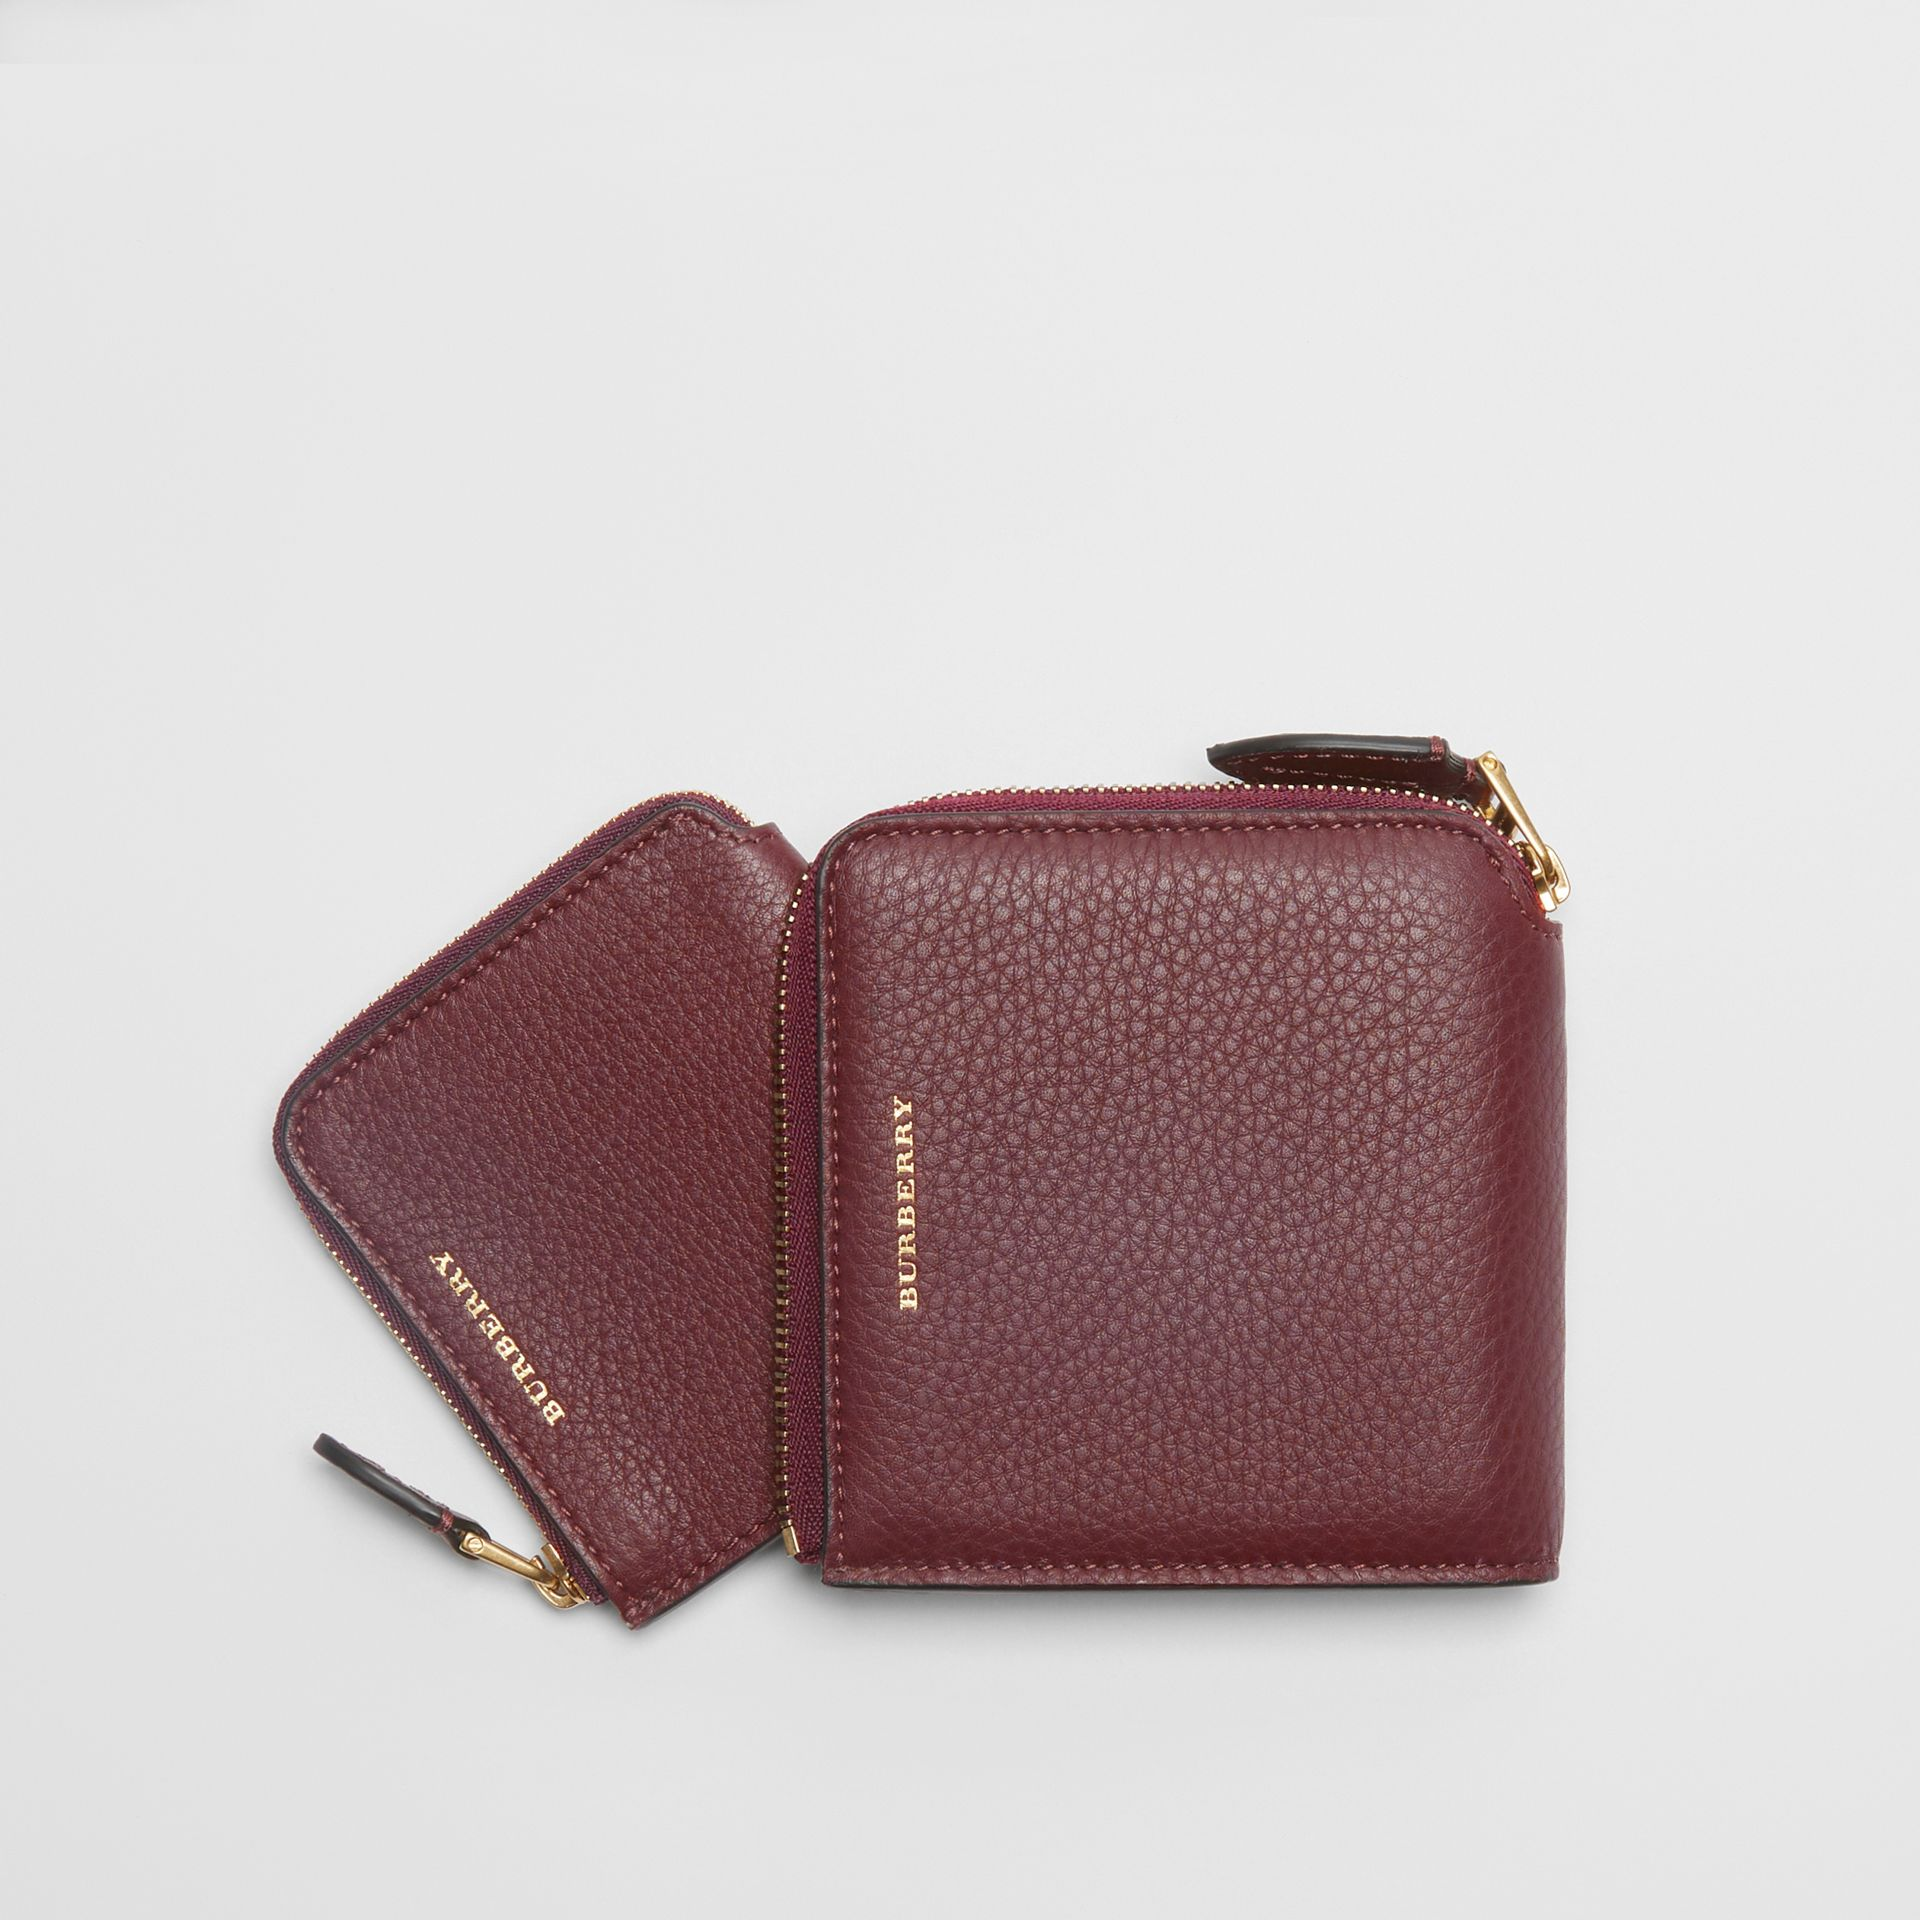 Grainy Leather Square Ziparound Wallet in Deep Claret - Women | Burberry United Kingdom - gallery image 3